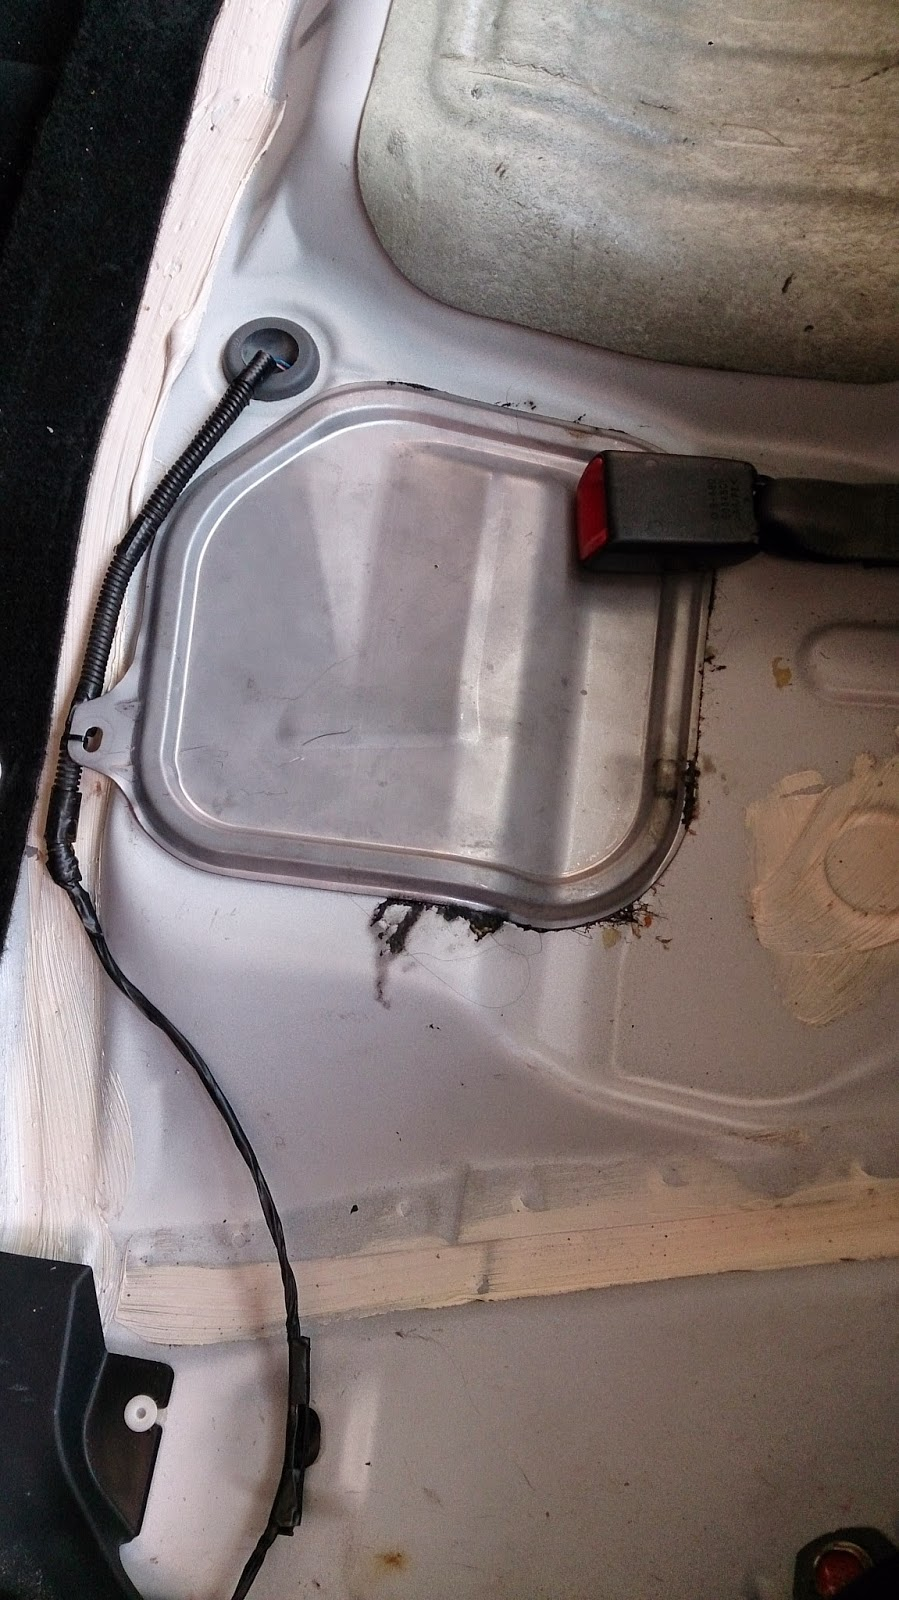 How To Change Fuel Filter Inspira Lancer Mod Guide 2008 Mitsubishi Pry Open It There Is No Screw Involve Just Pure Glue Once Remove You Will Notice Full Of Dirt On Top As Expose The Road Condition